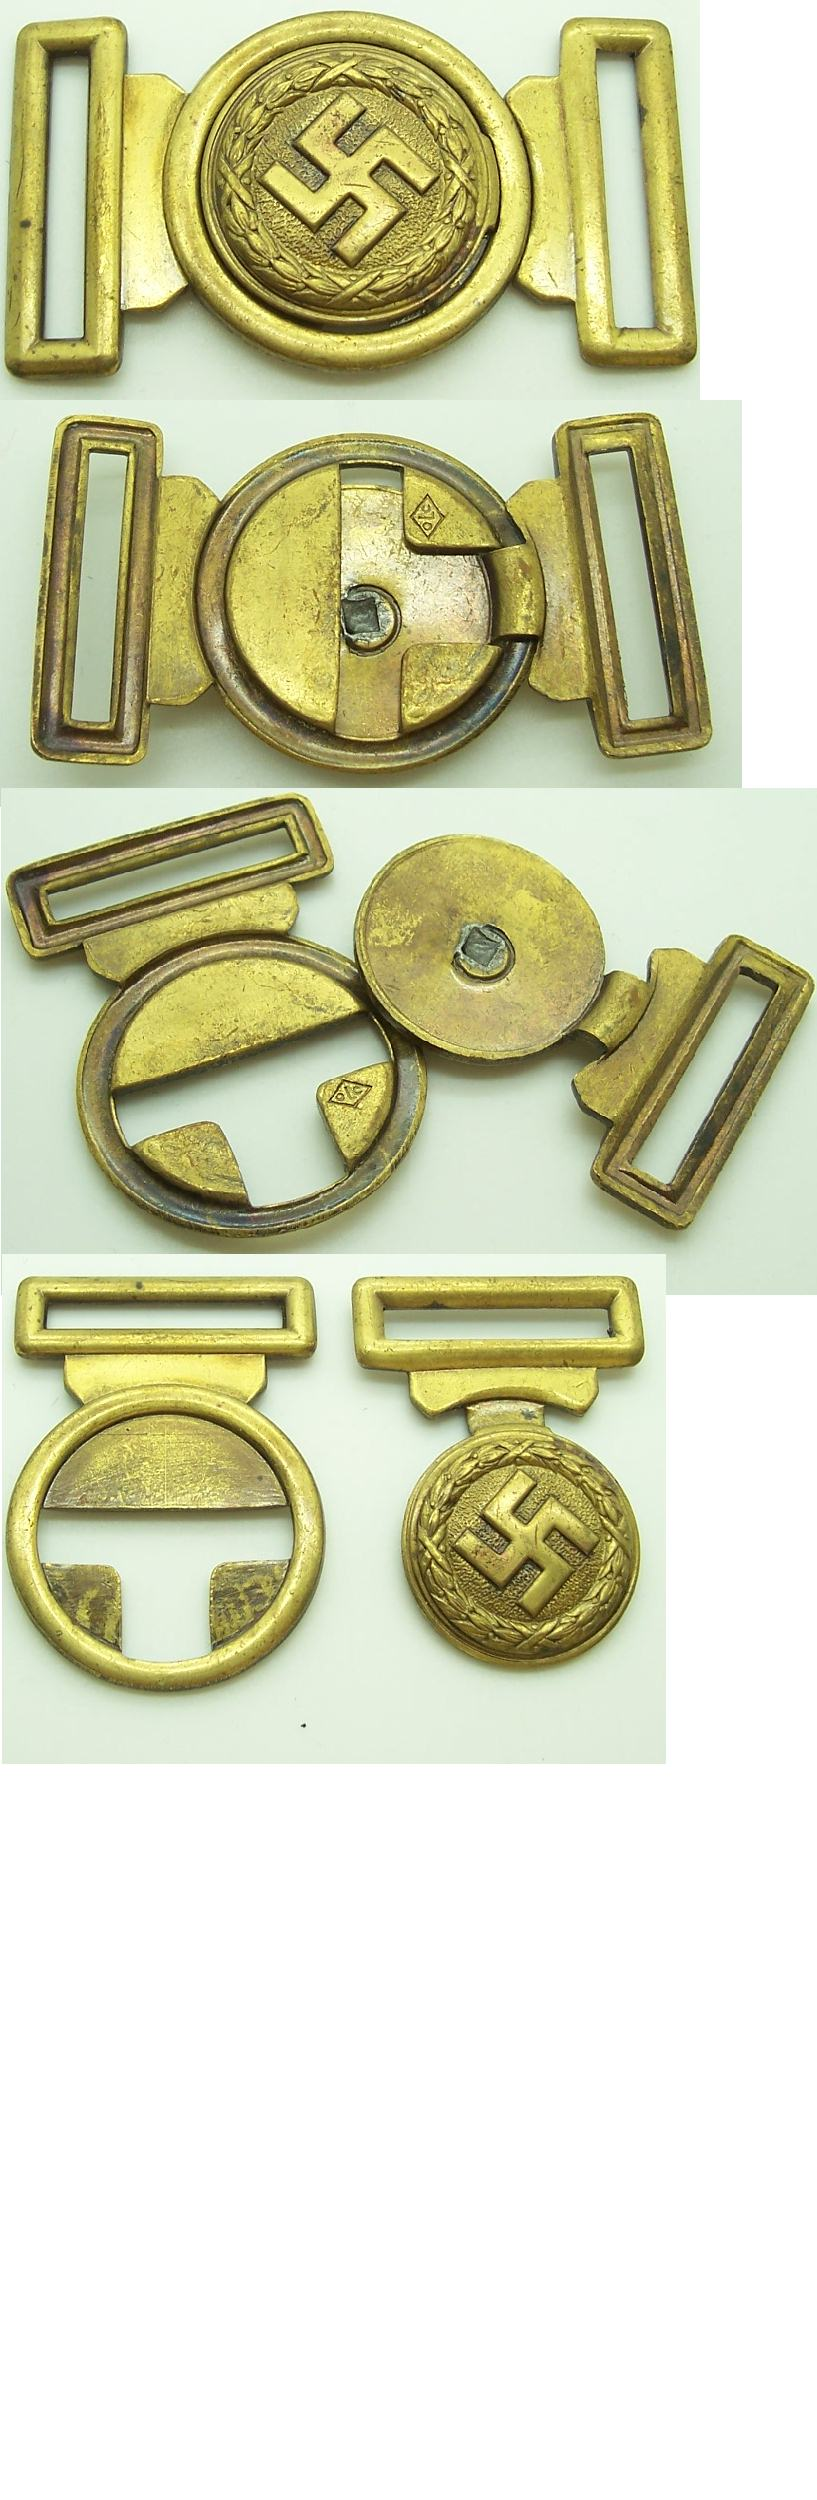 Early Nazi Sympathizer Buckle by Overhoff & Cie